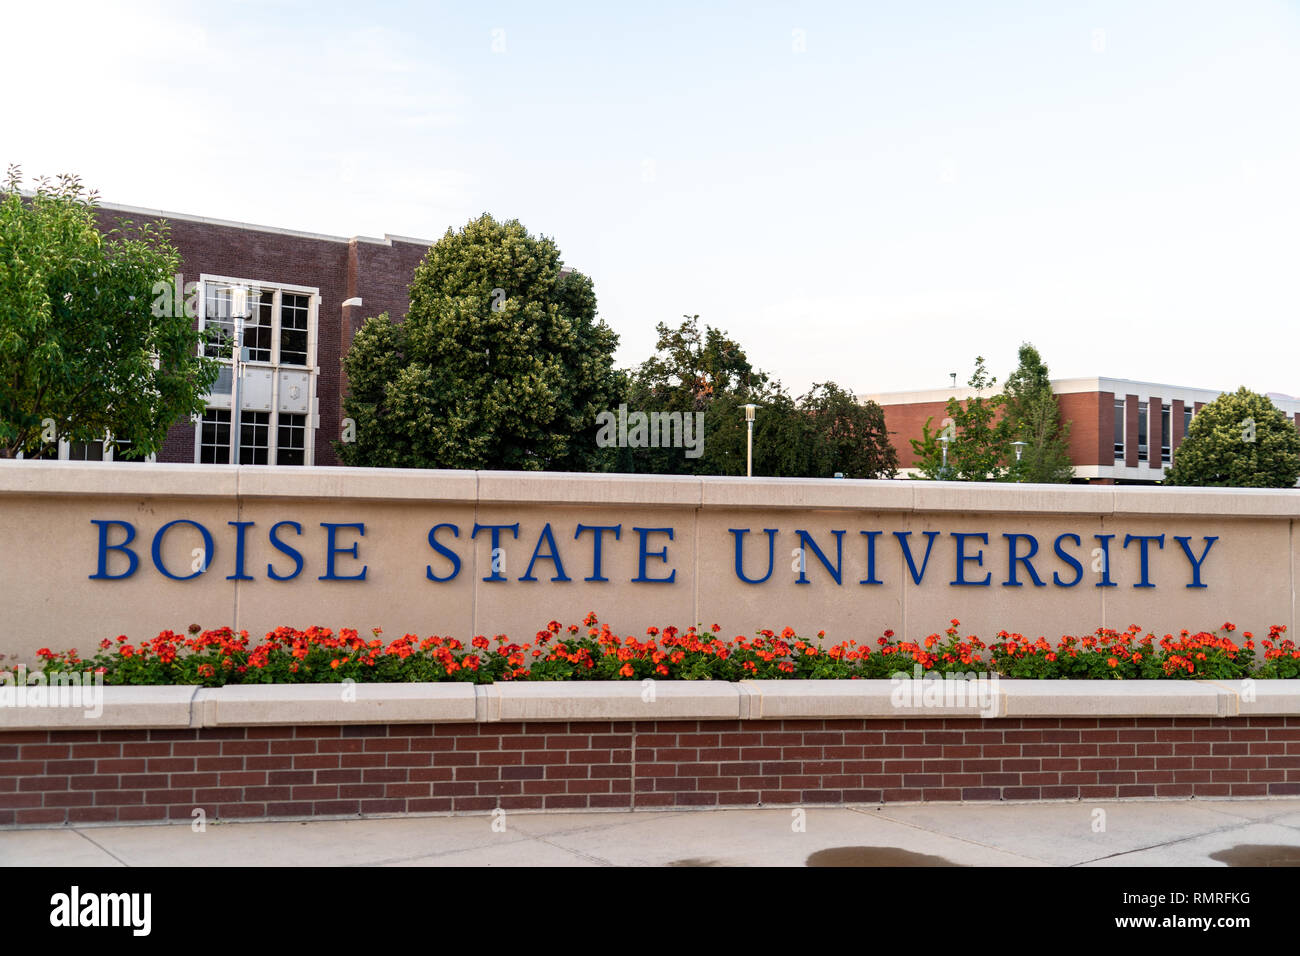 Boise, Idaho - July 21, 2018: Boise State Campus sign at the college campus, exterior view - Stock Image